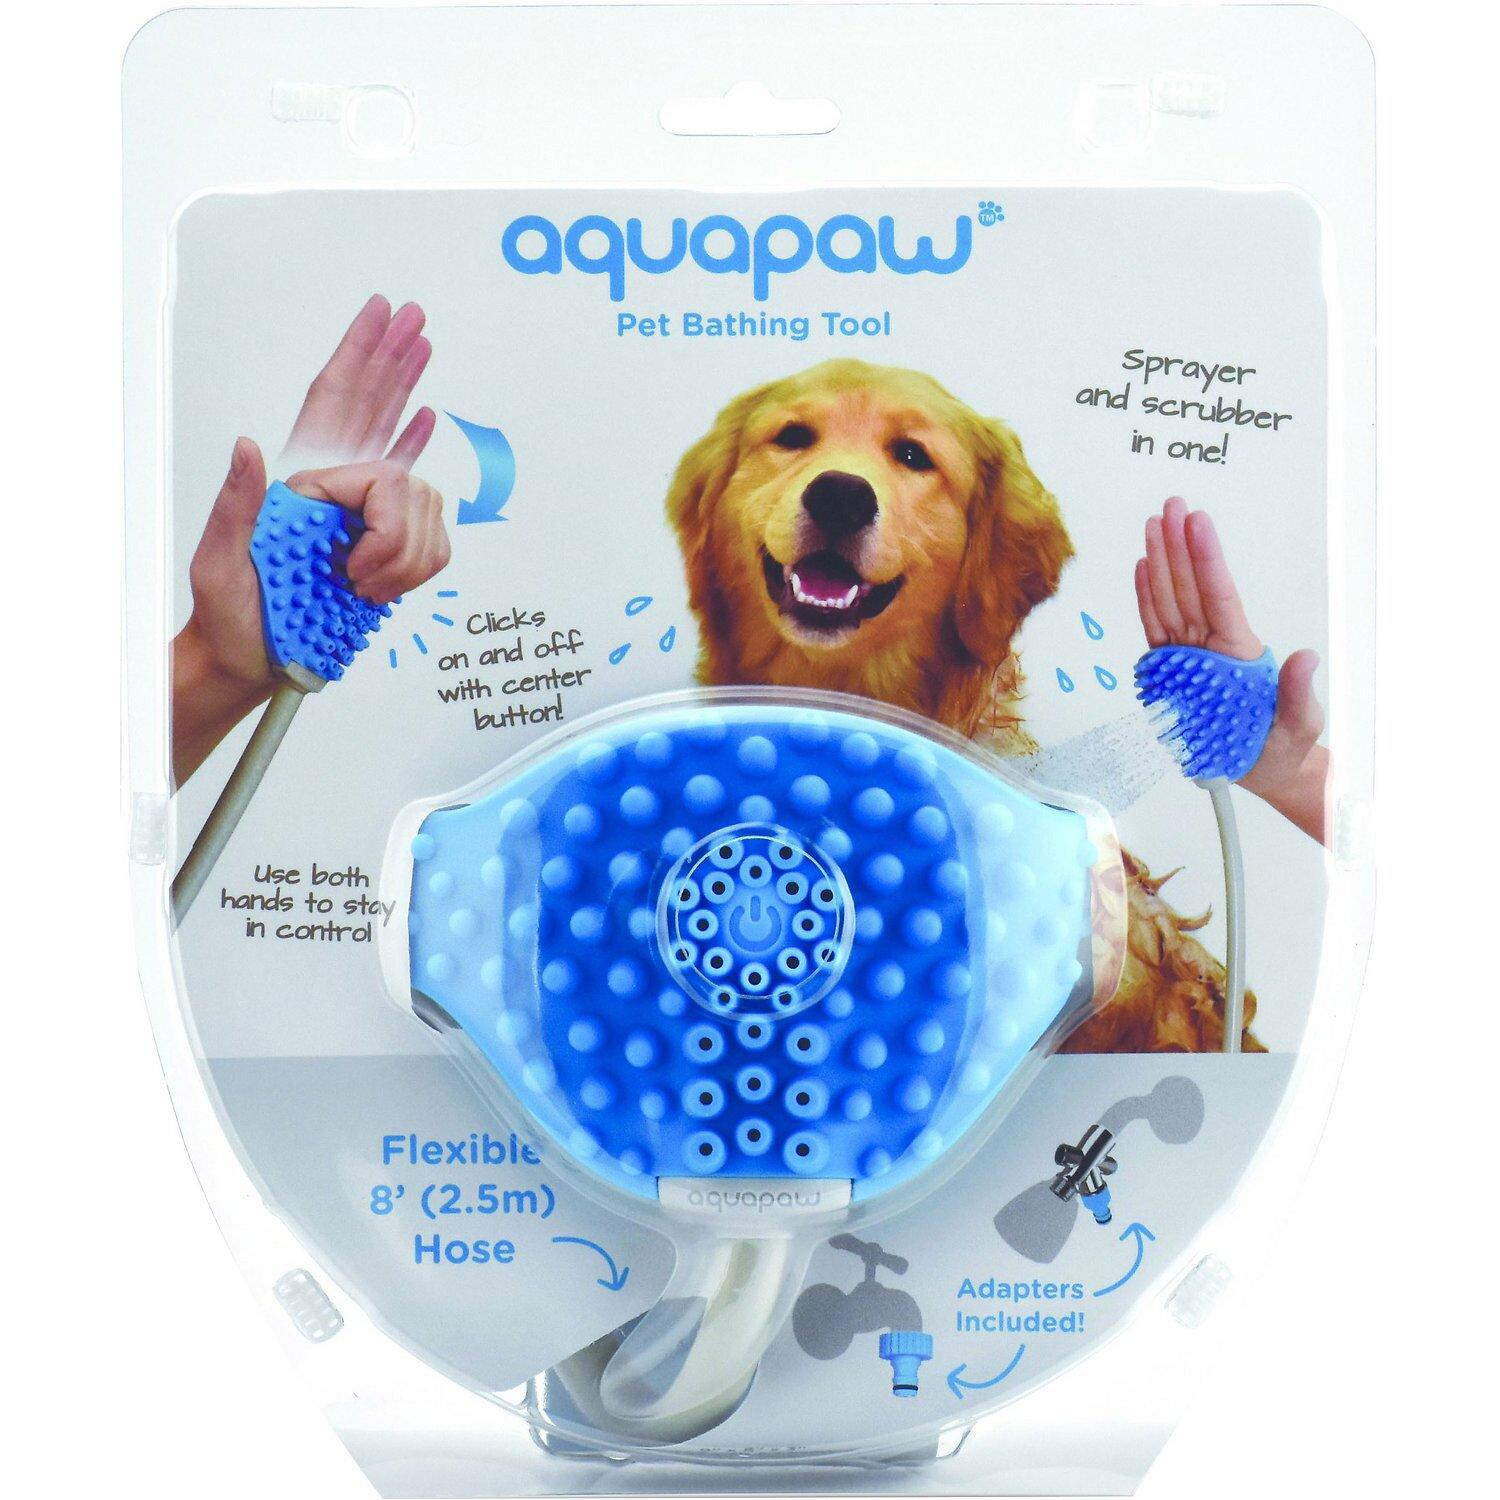 Pet Parents Are Raving About This